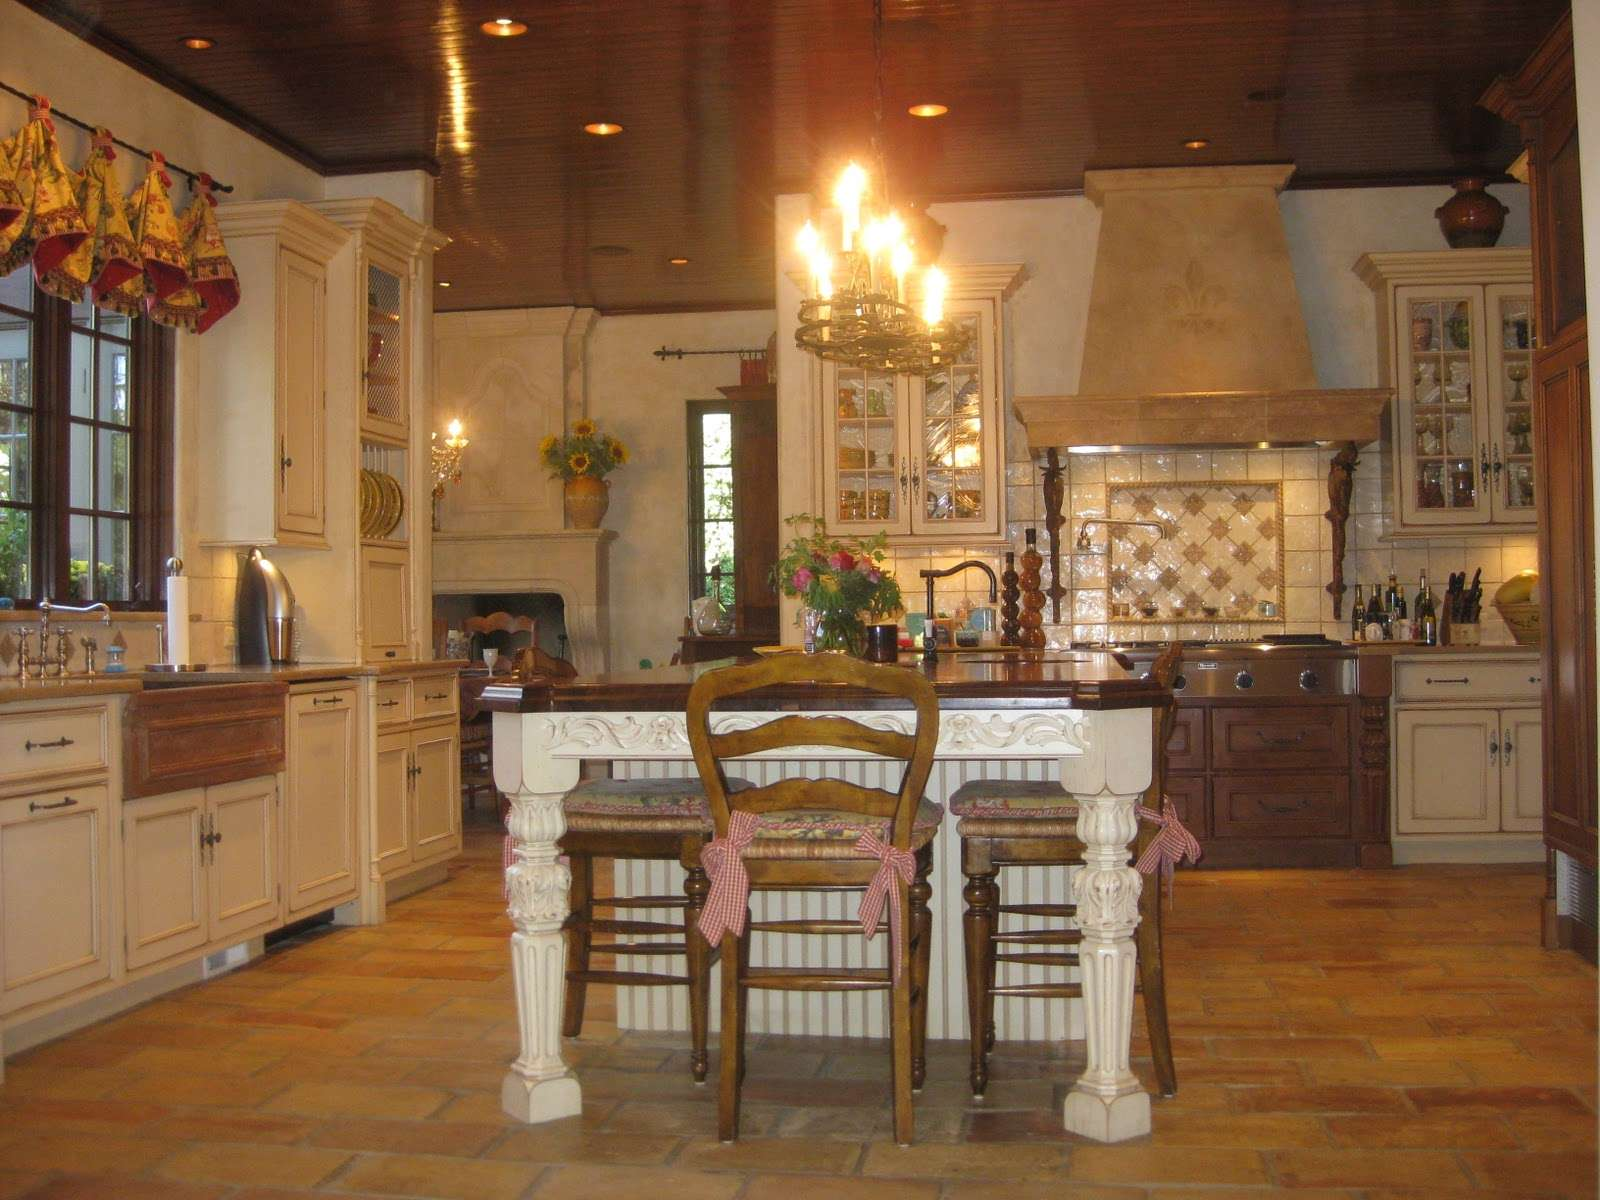 French Country Kitchens Kitchen Kims